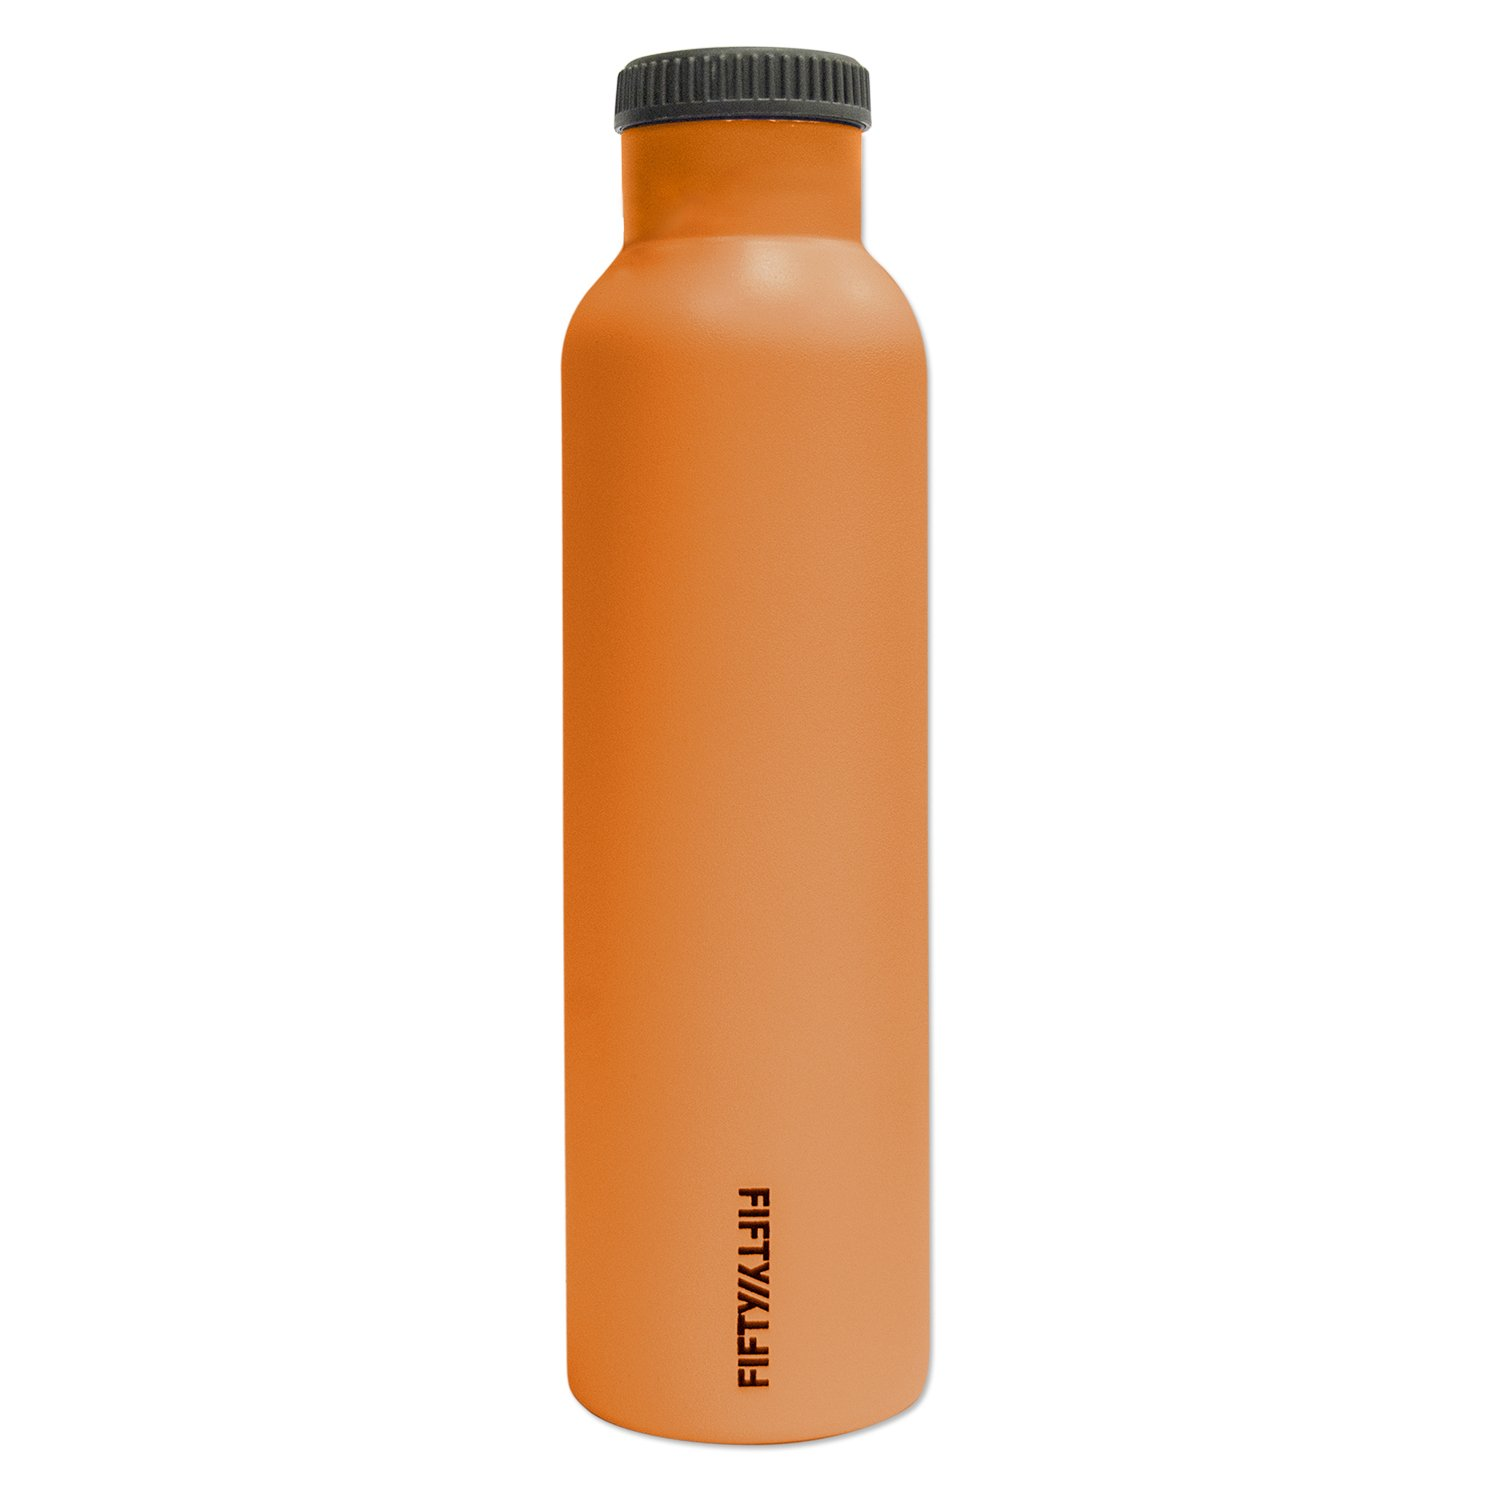 Fifty/Fifty Orange Vacuum-Insulated Stainless Steel